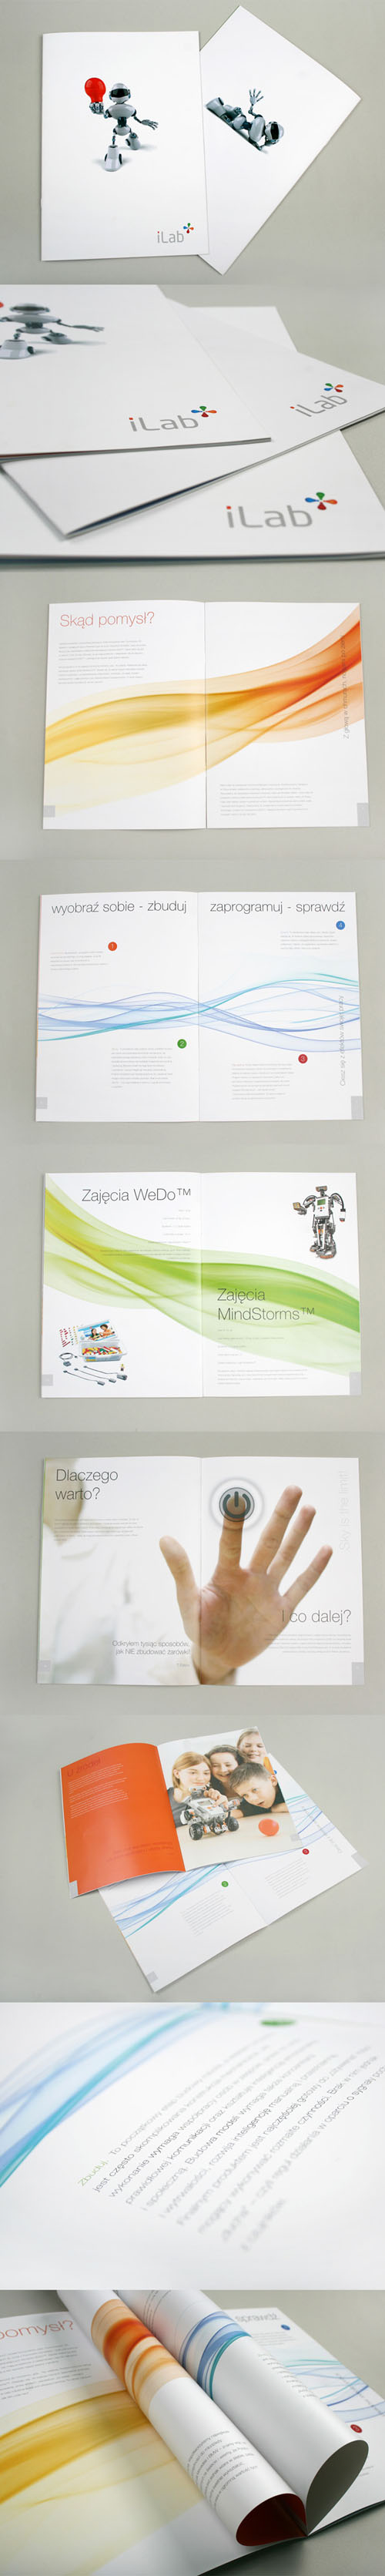 brochure2 25 Incredible Examples of Brochure and Catalog Design